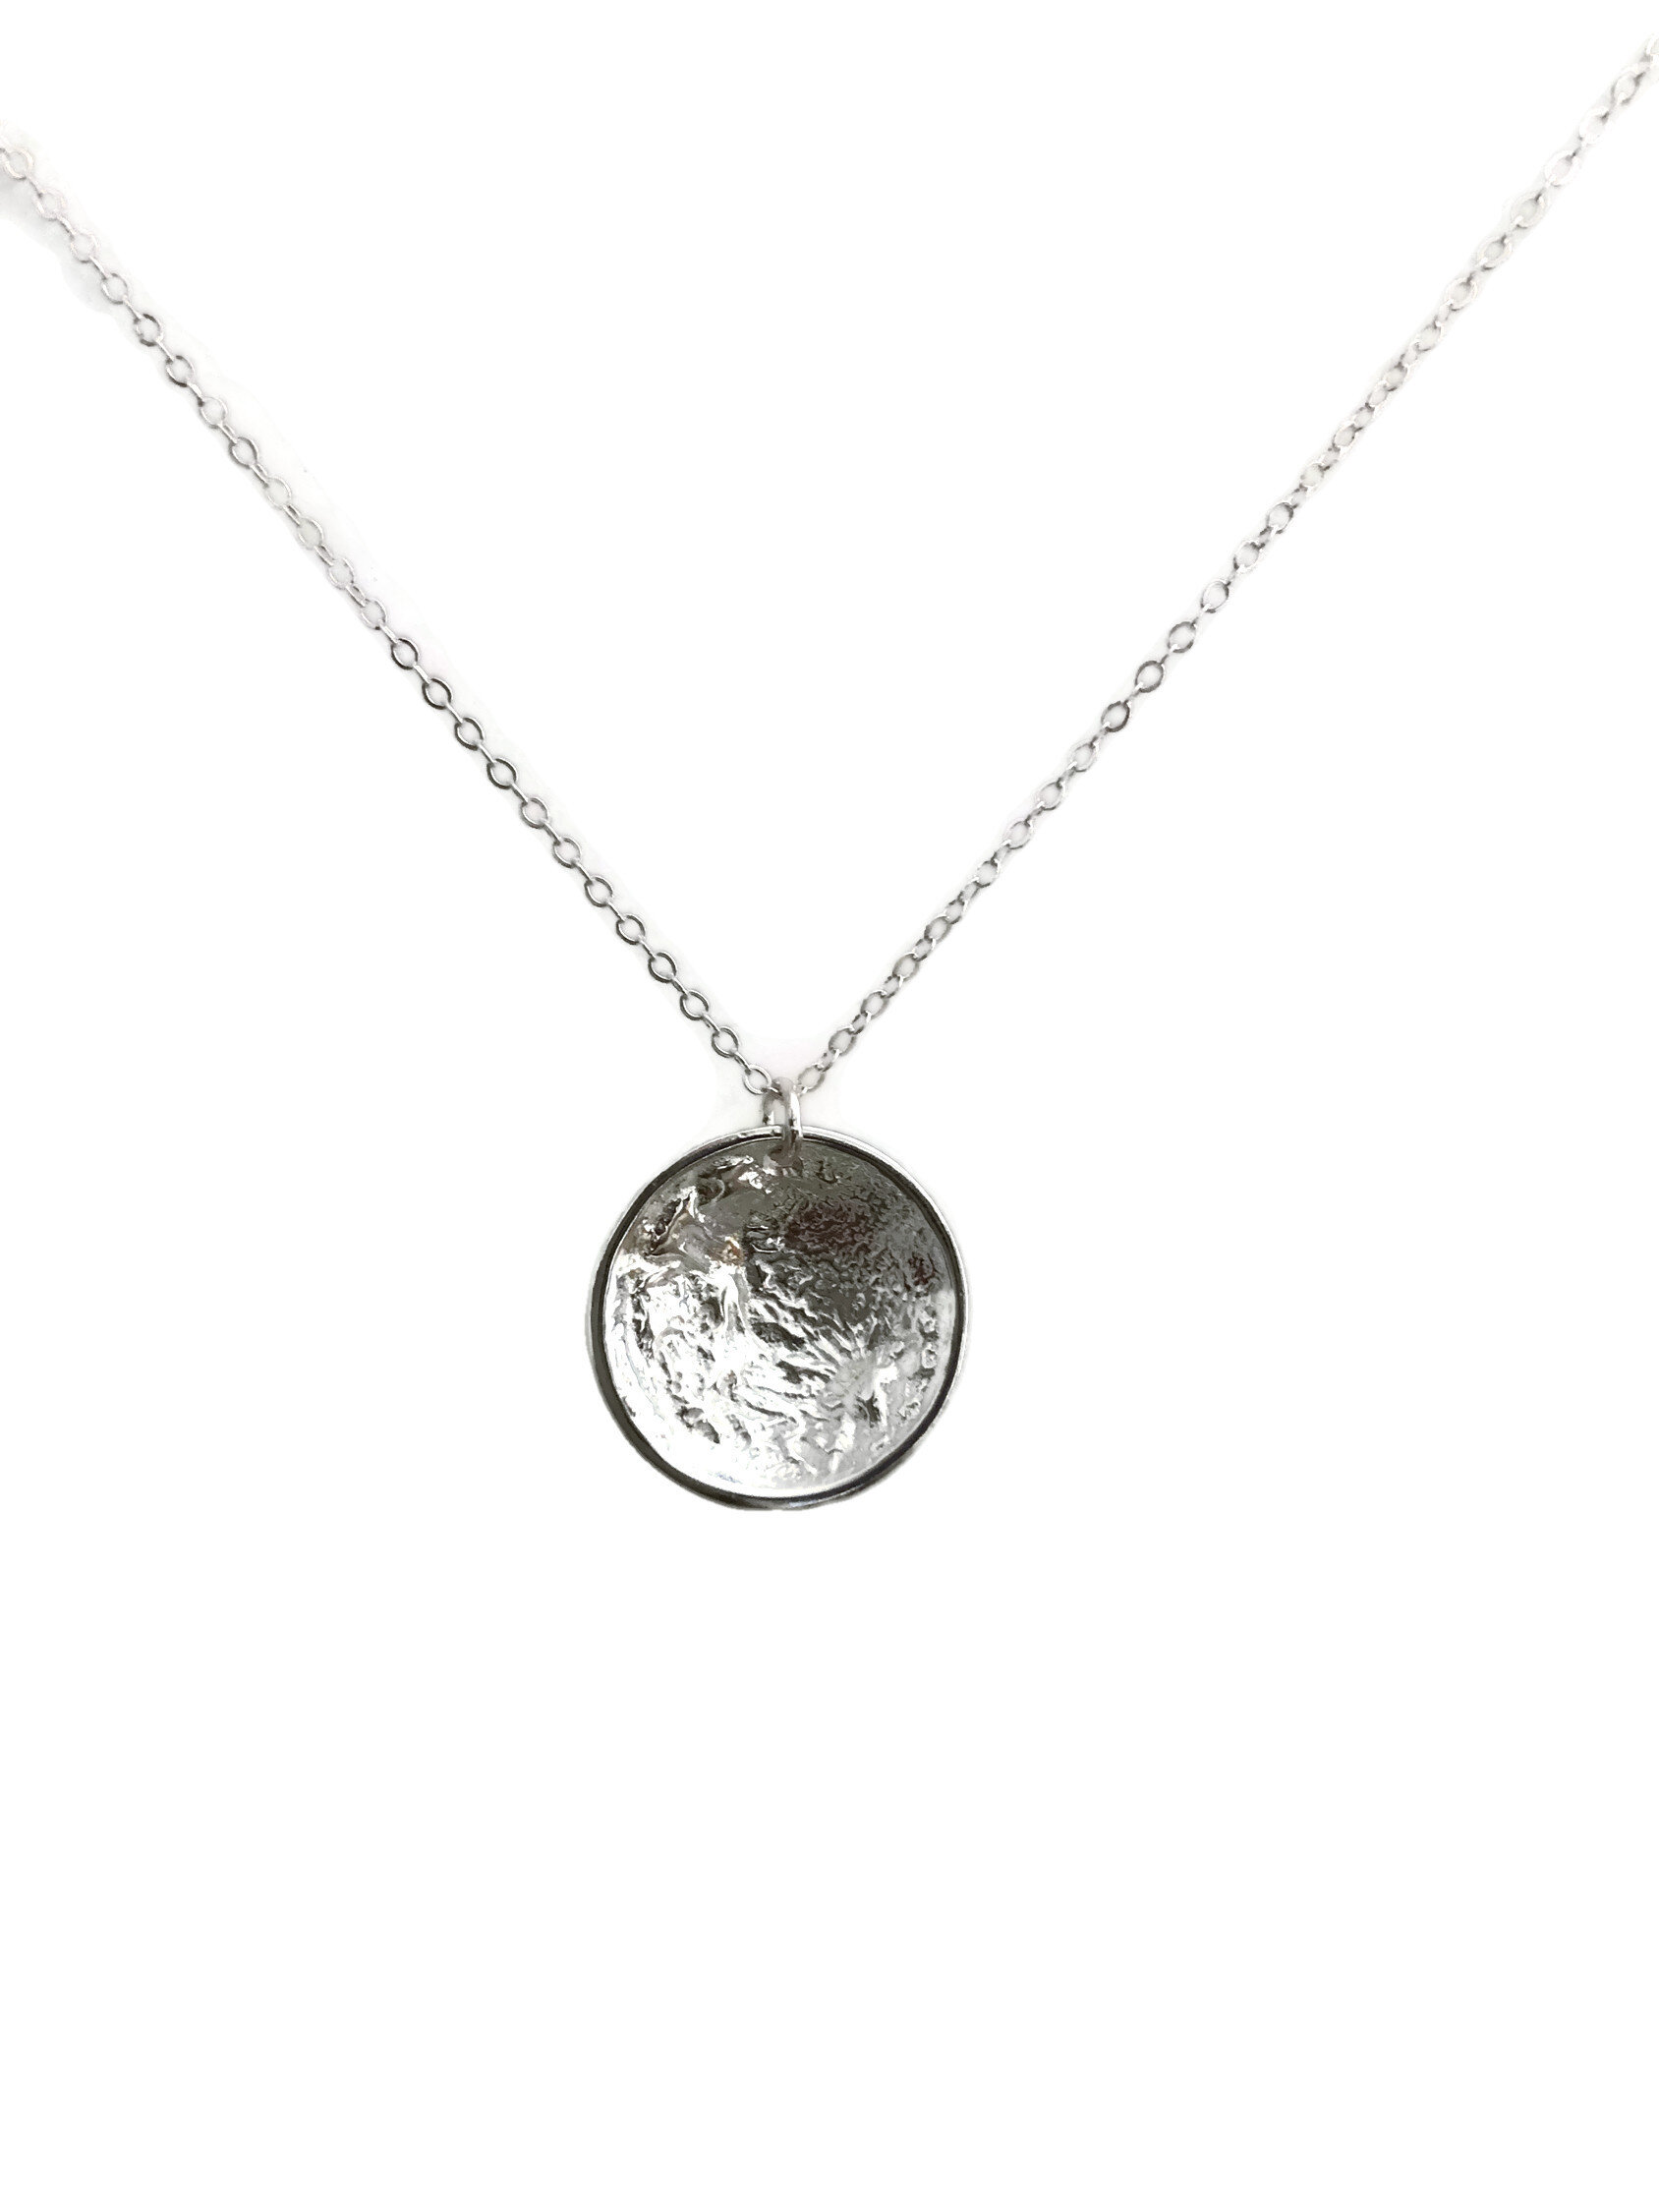 abobo_lunarv02necklace.jpg